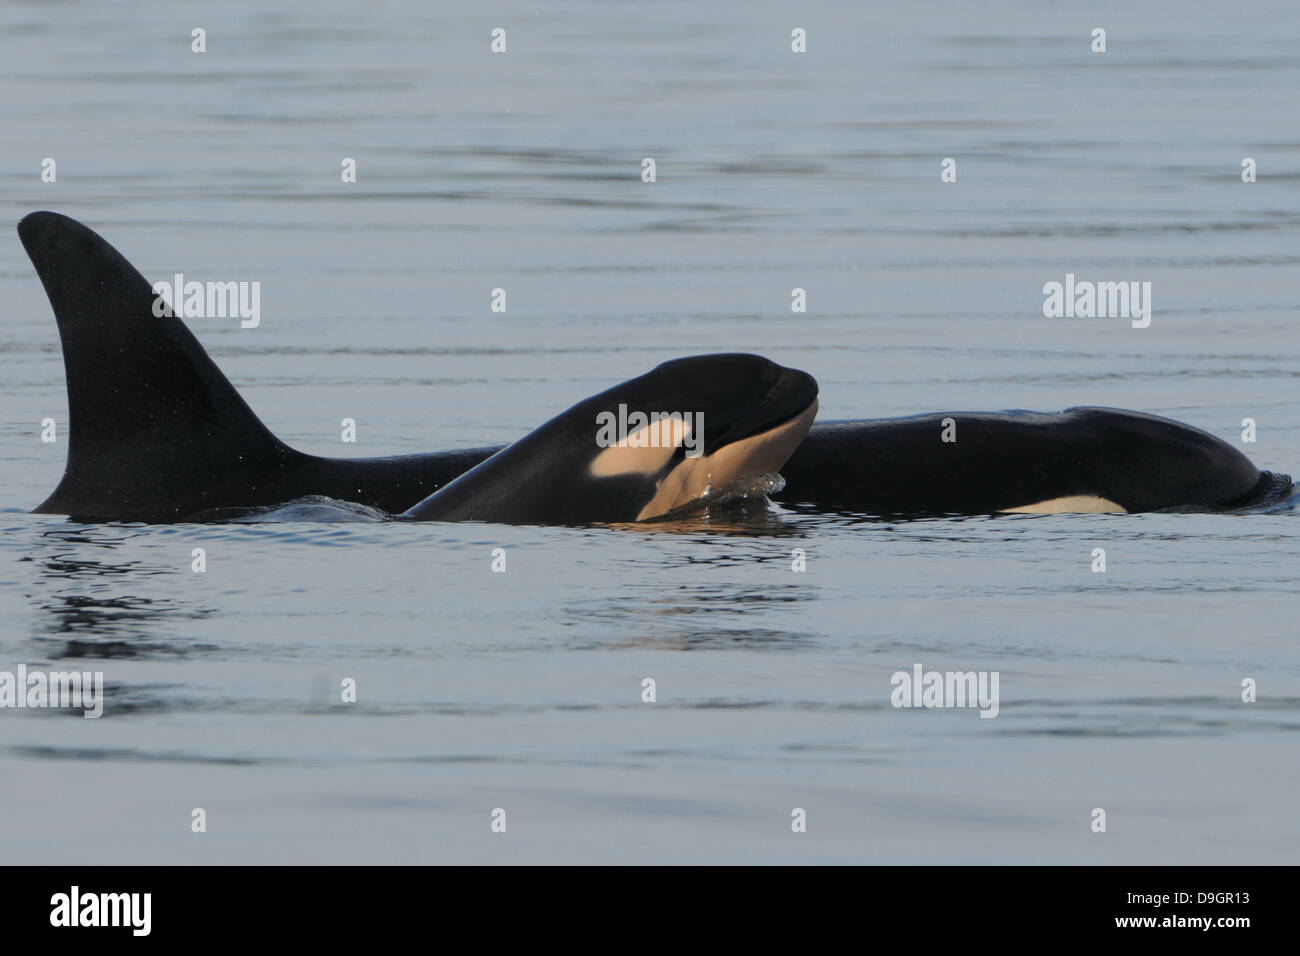 a killer whale calf surfaces next to its mother - Stock Image